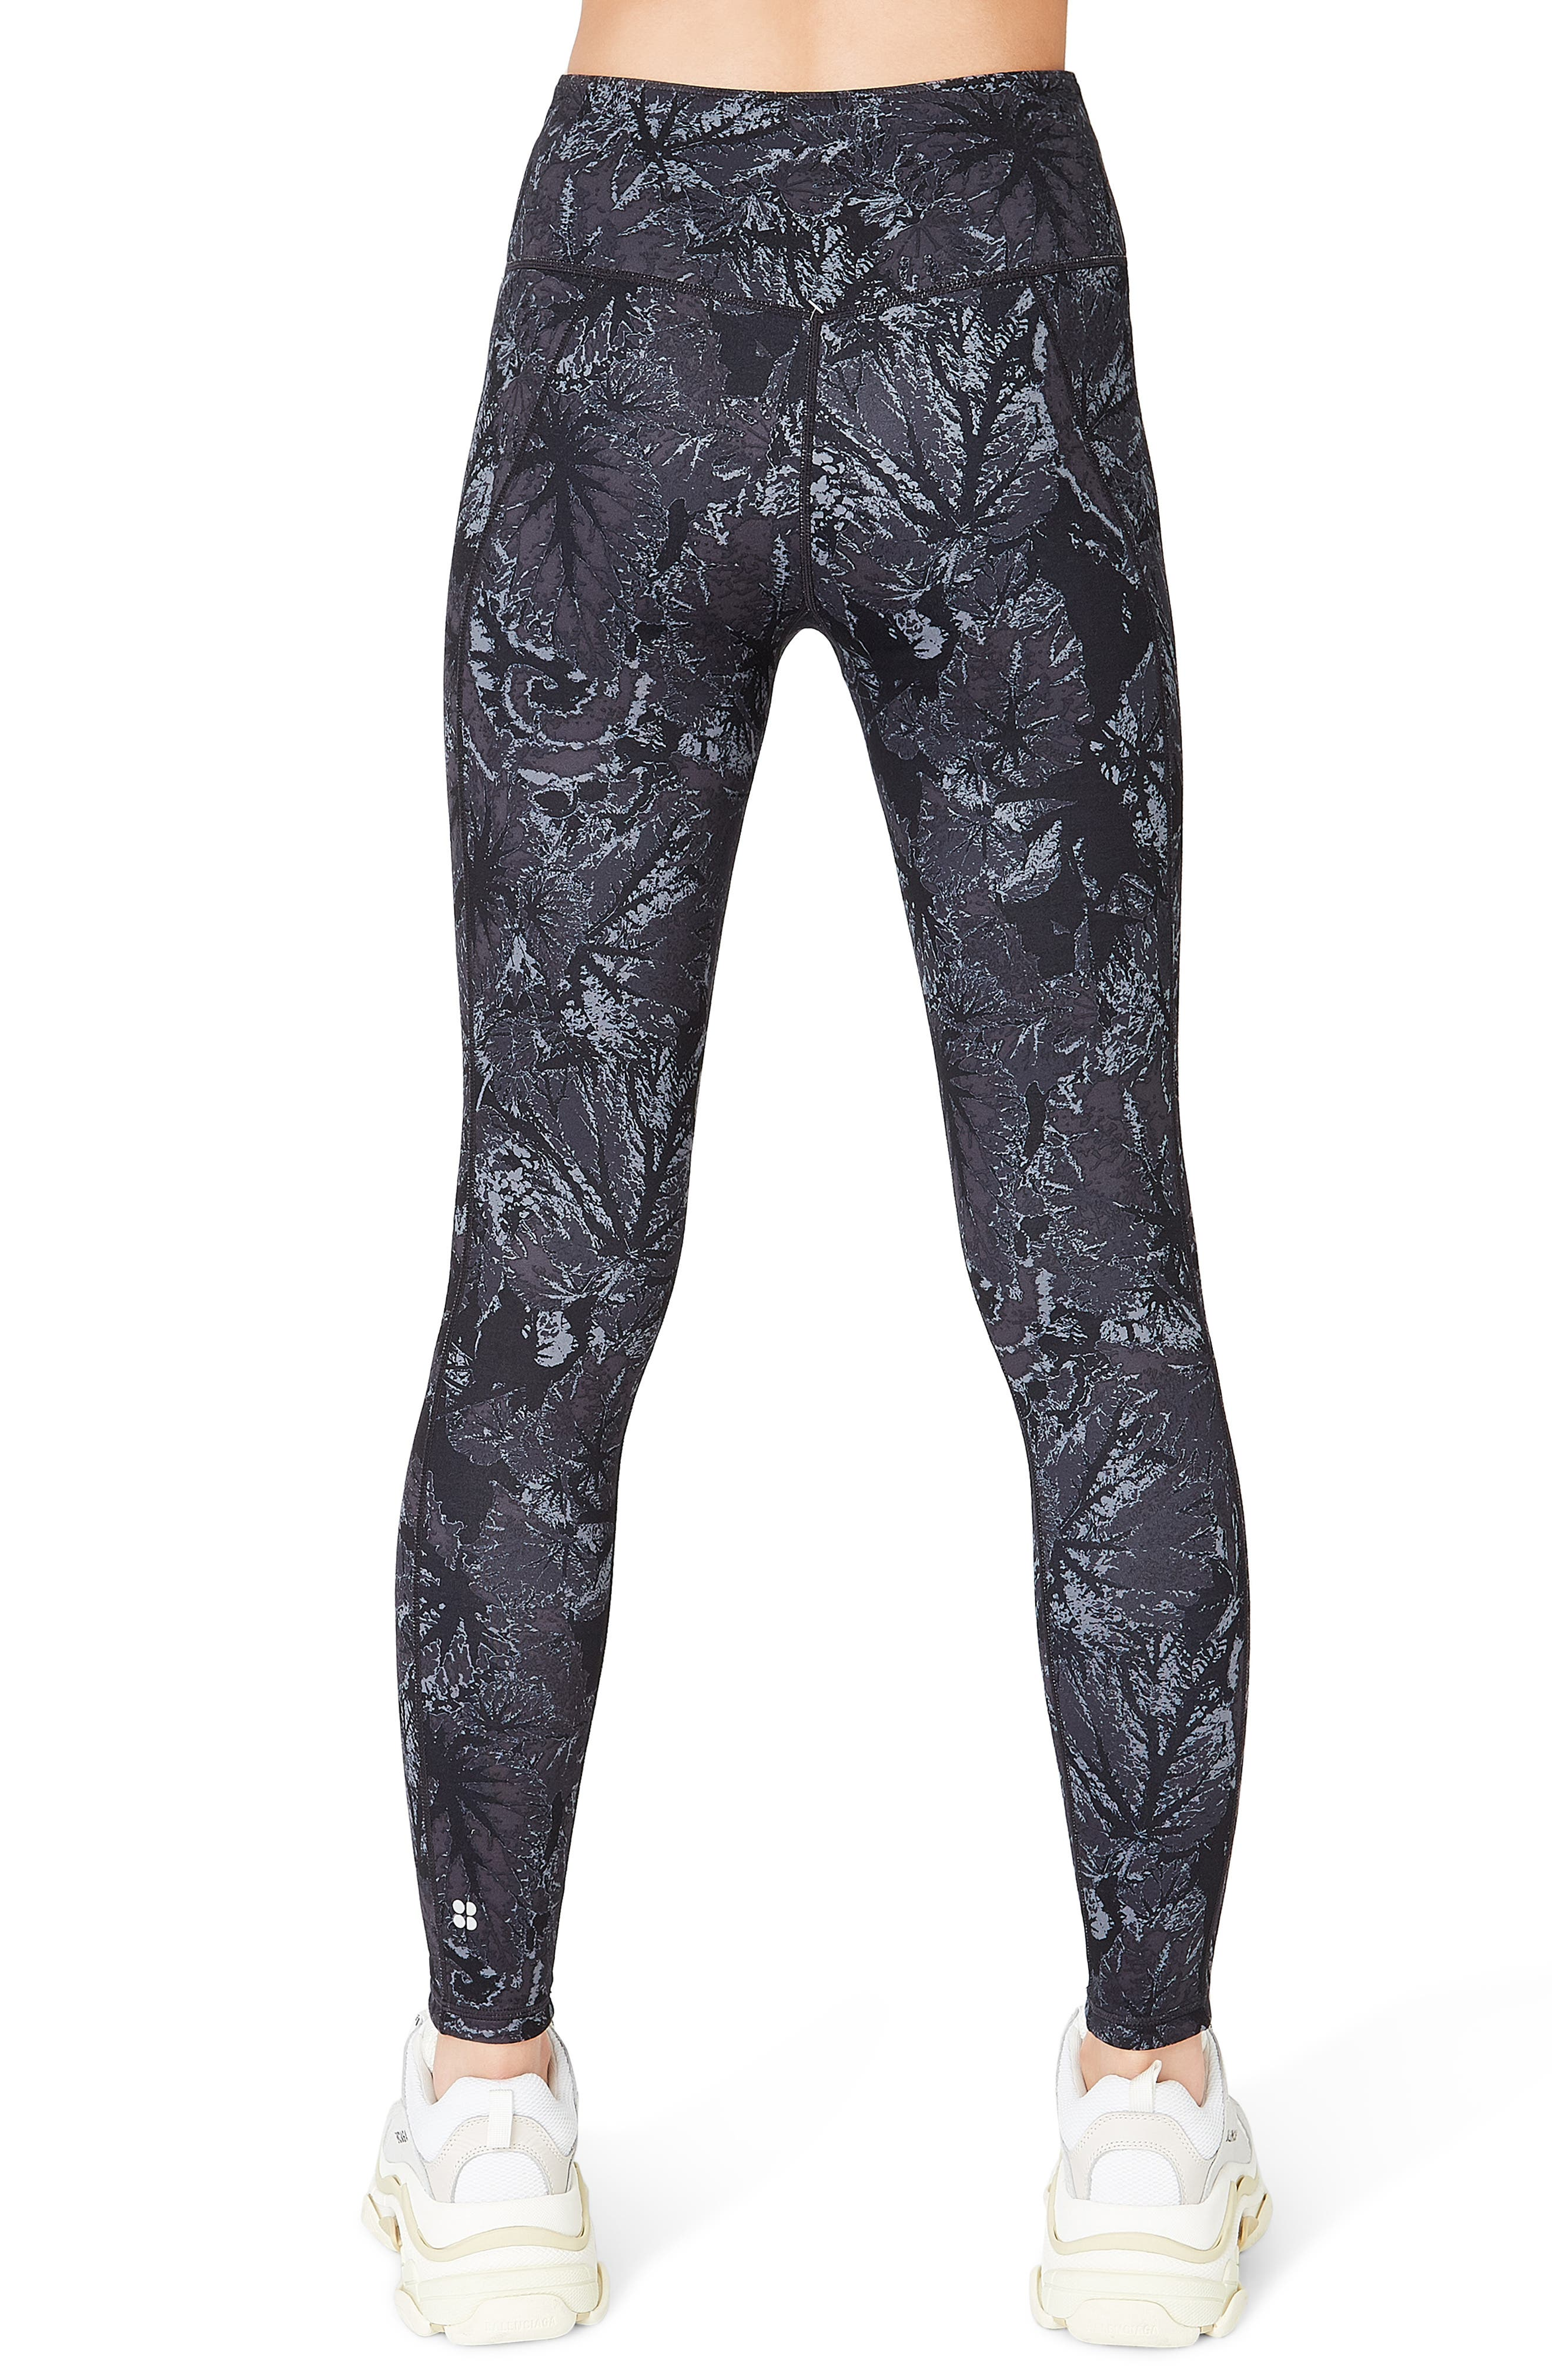 SWEATY BETTY, Reversible Yoga Leggings, Alternate thumbnail 4, color, TONAL BEGONIA PRINT